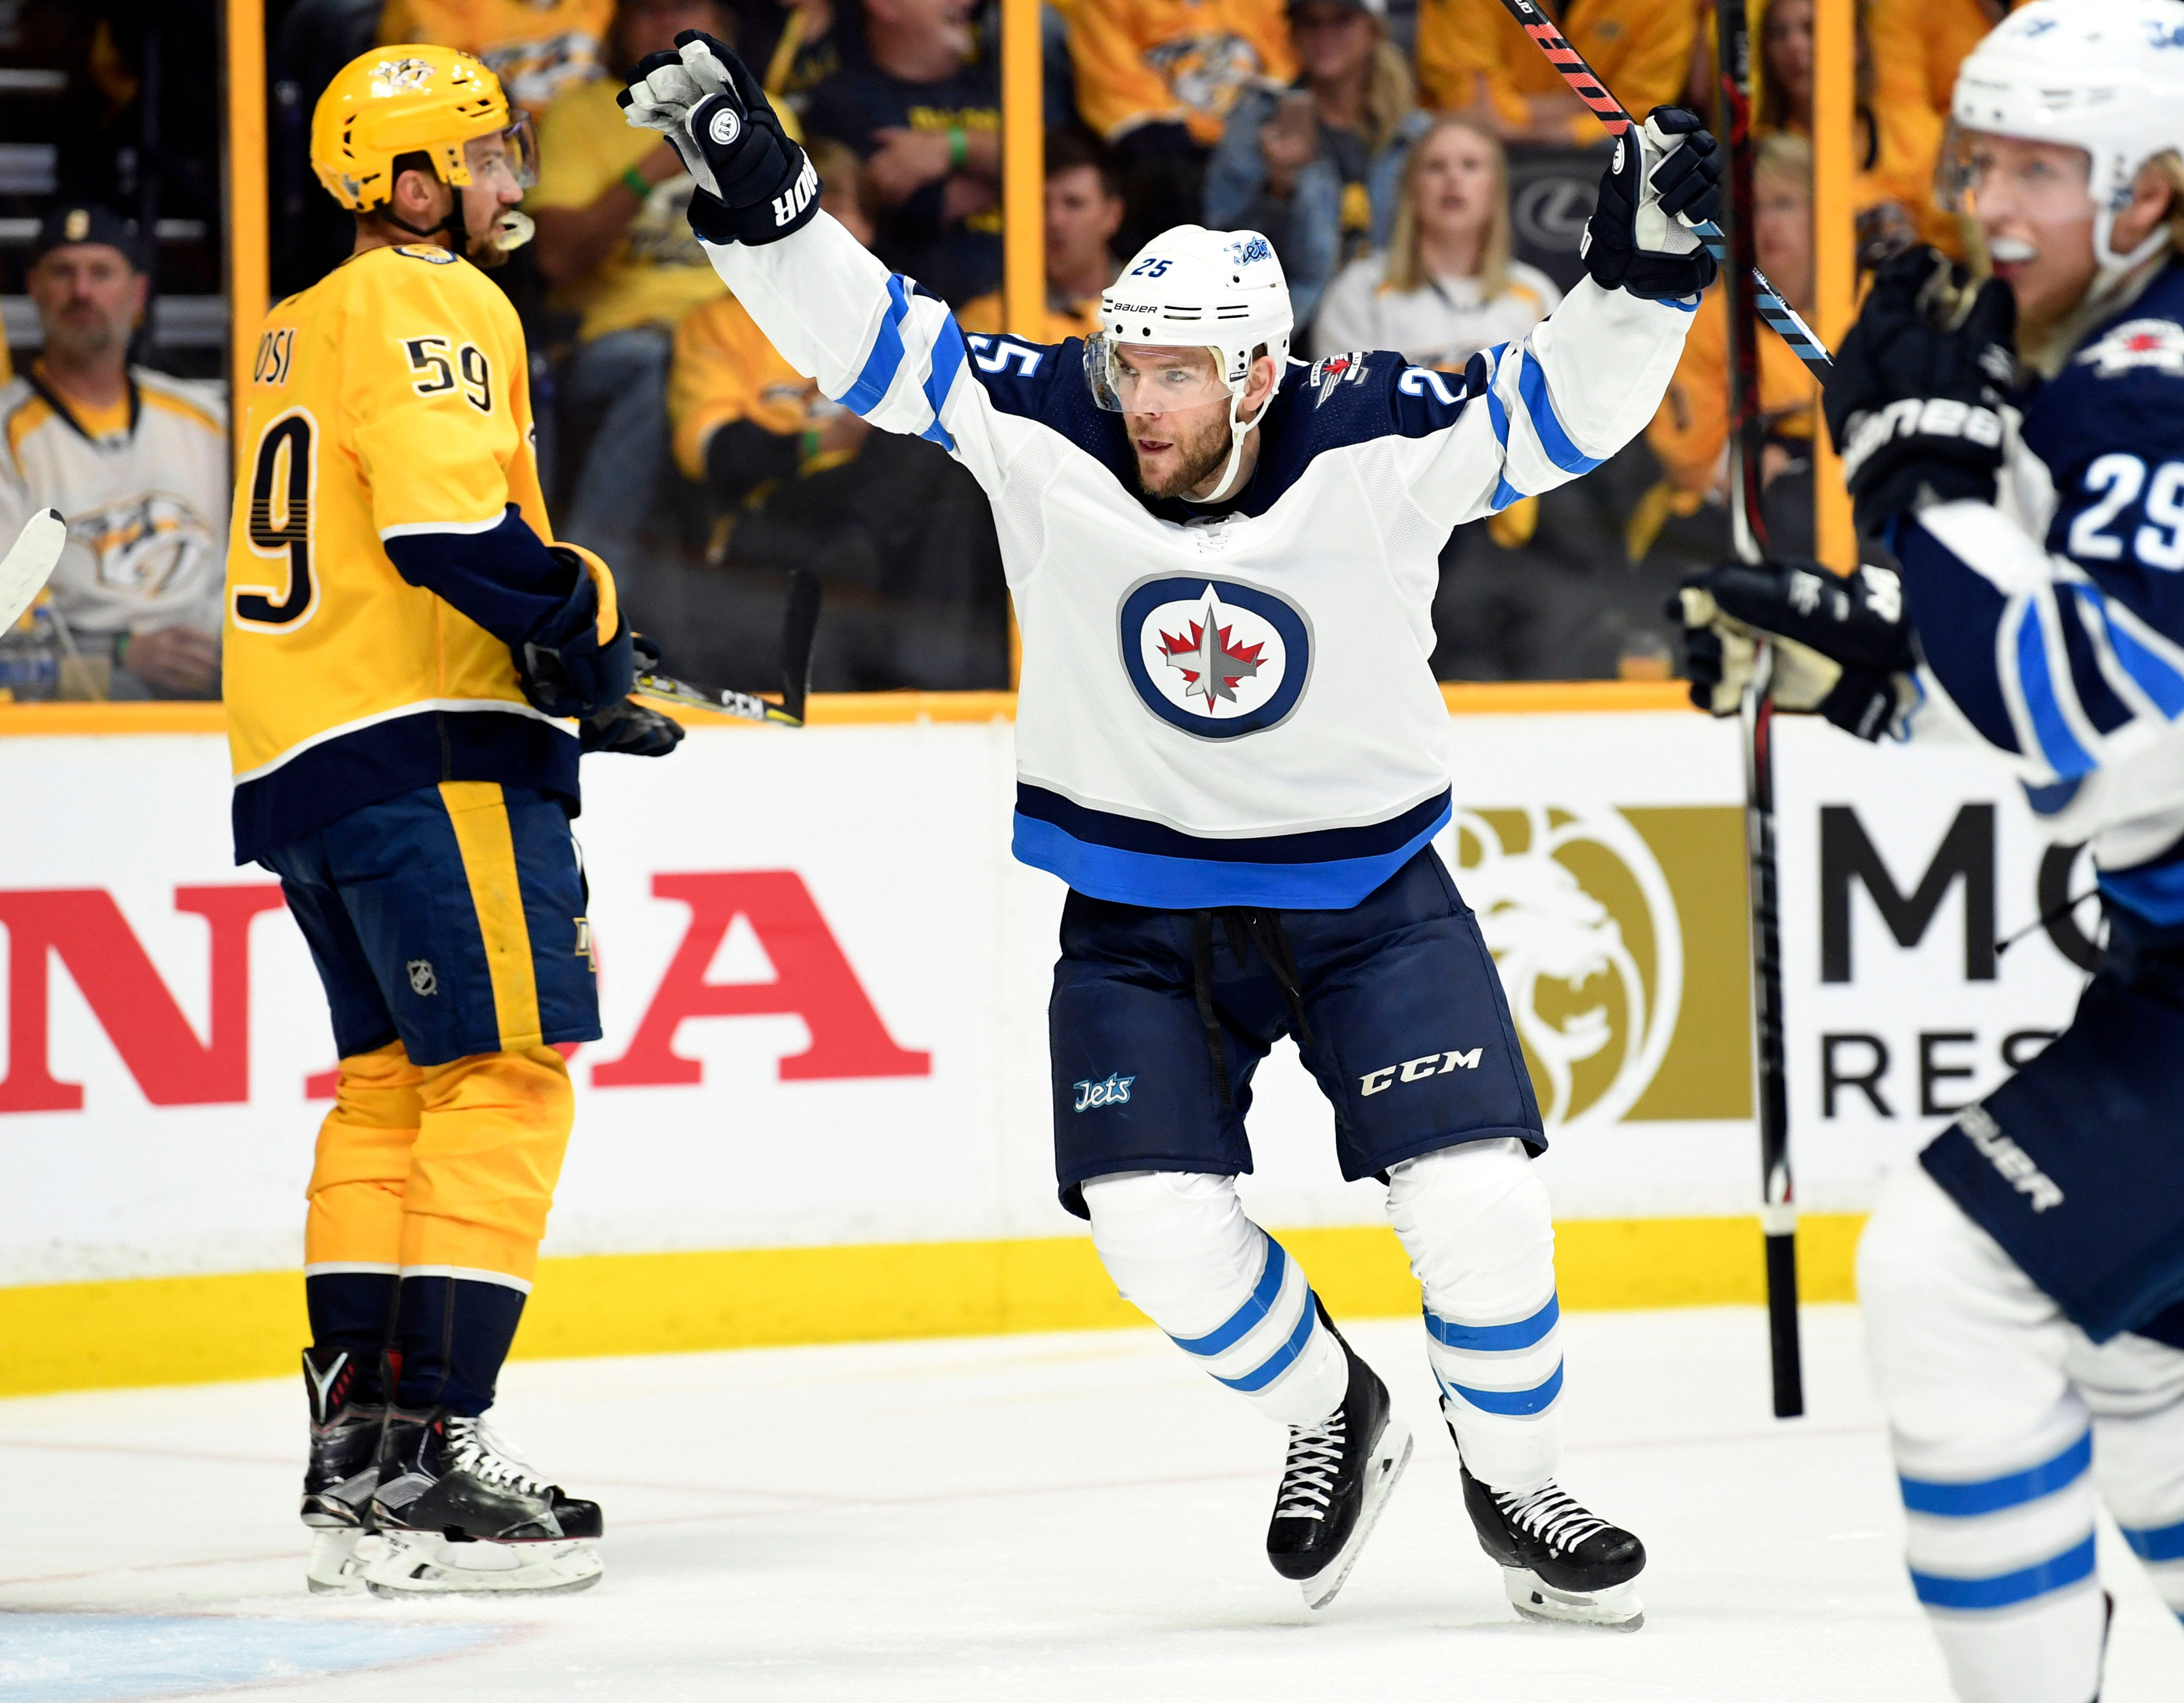 Winnipeg Jets center Paul Stastny celebrates a goal during the first period against the Nashville Predators in game seven of the second round of the 2018 Stanley Cup Playoffs at Bridgestone Arena in Nashville.